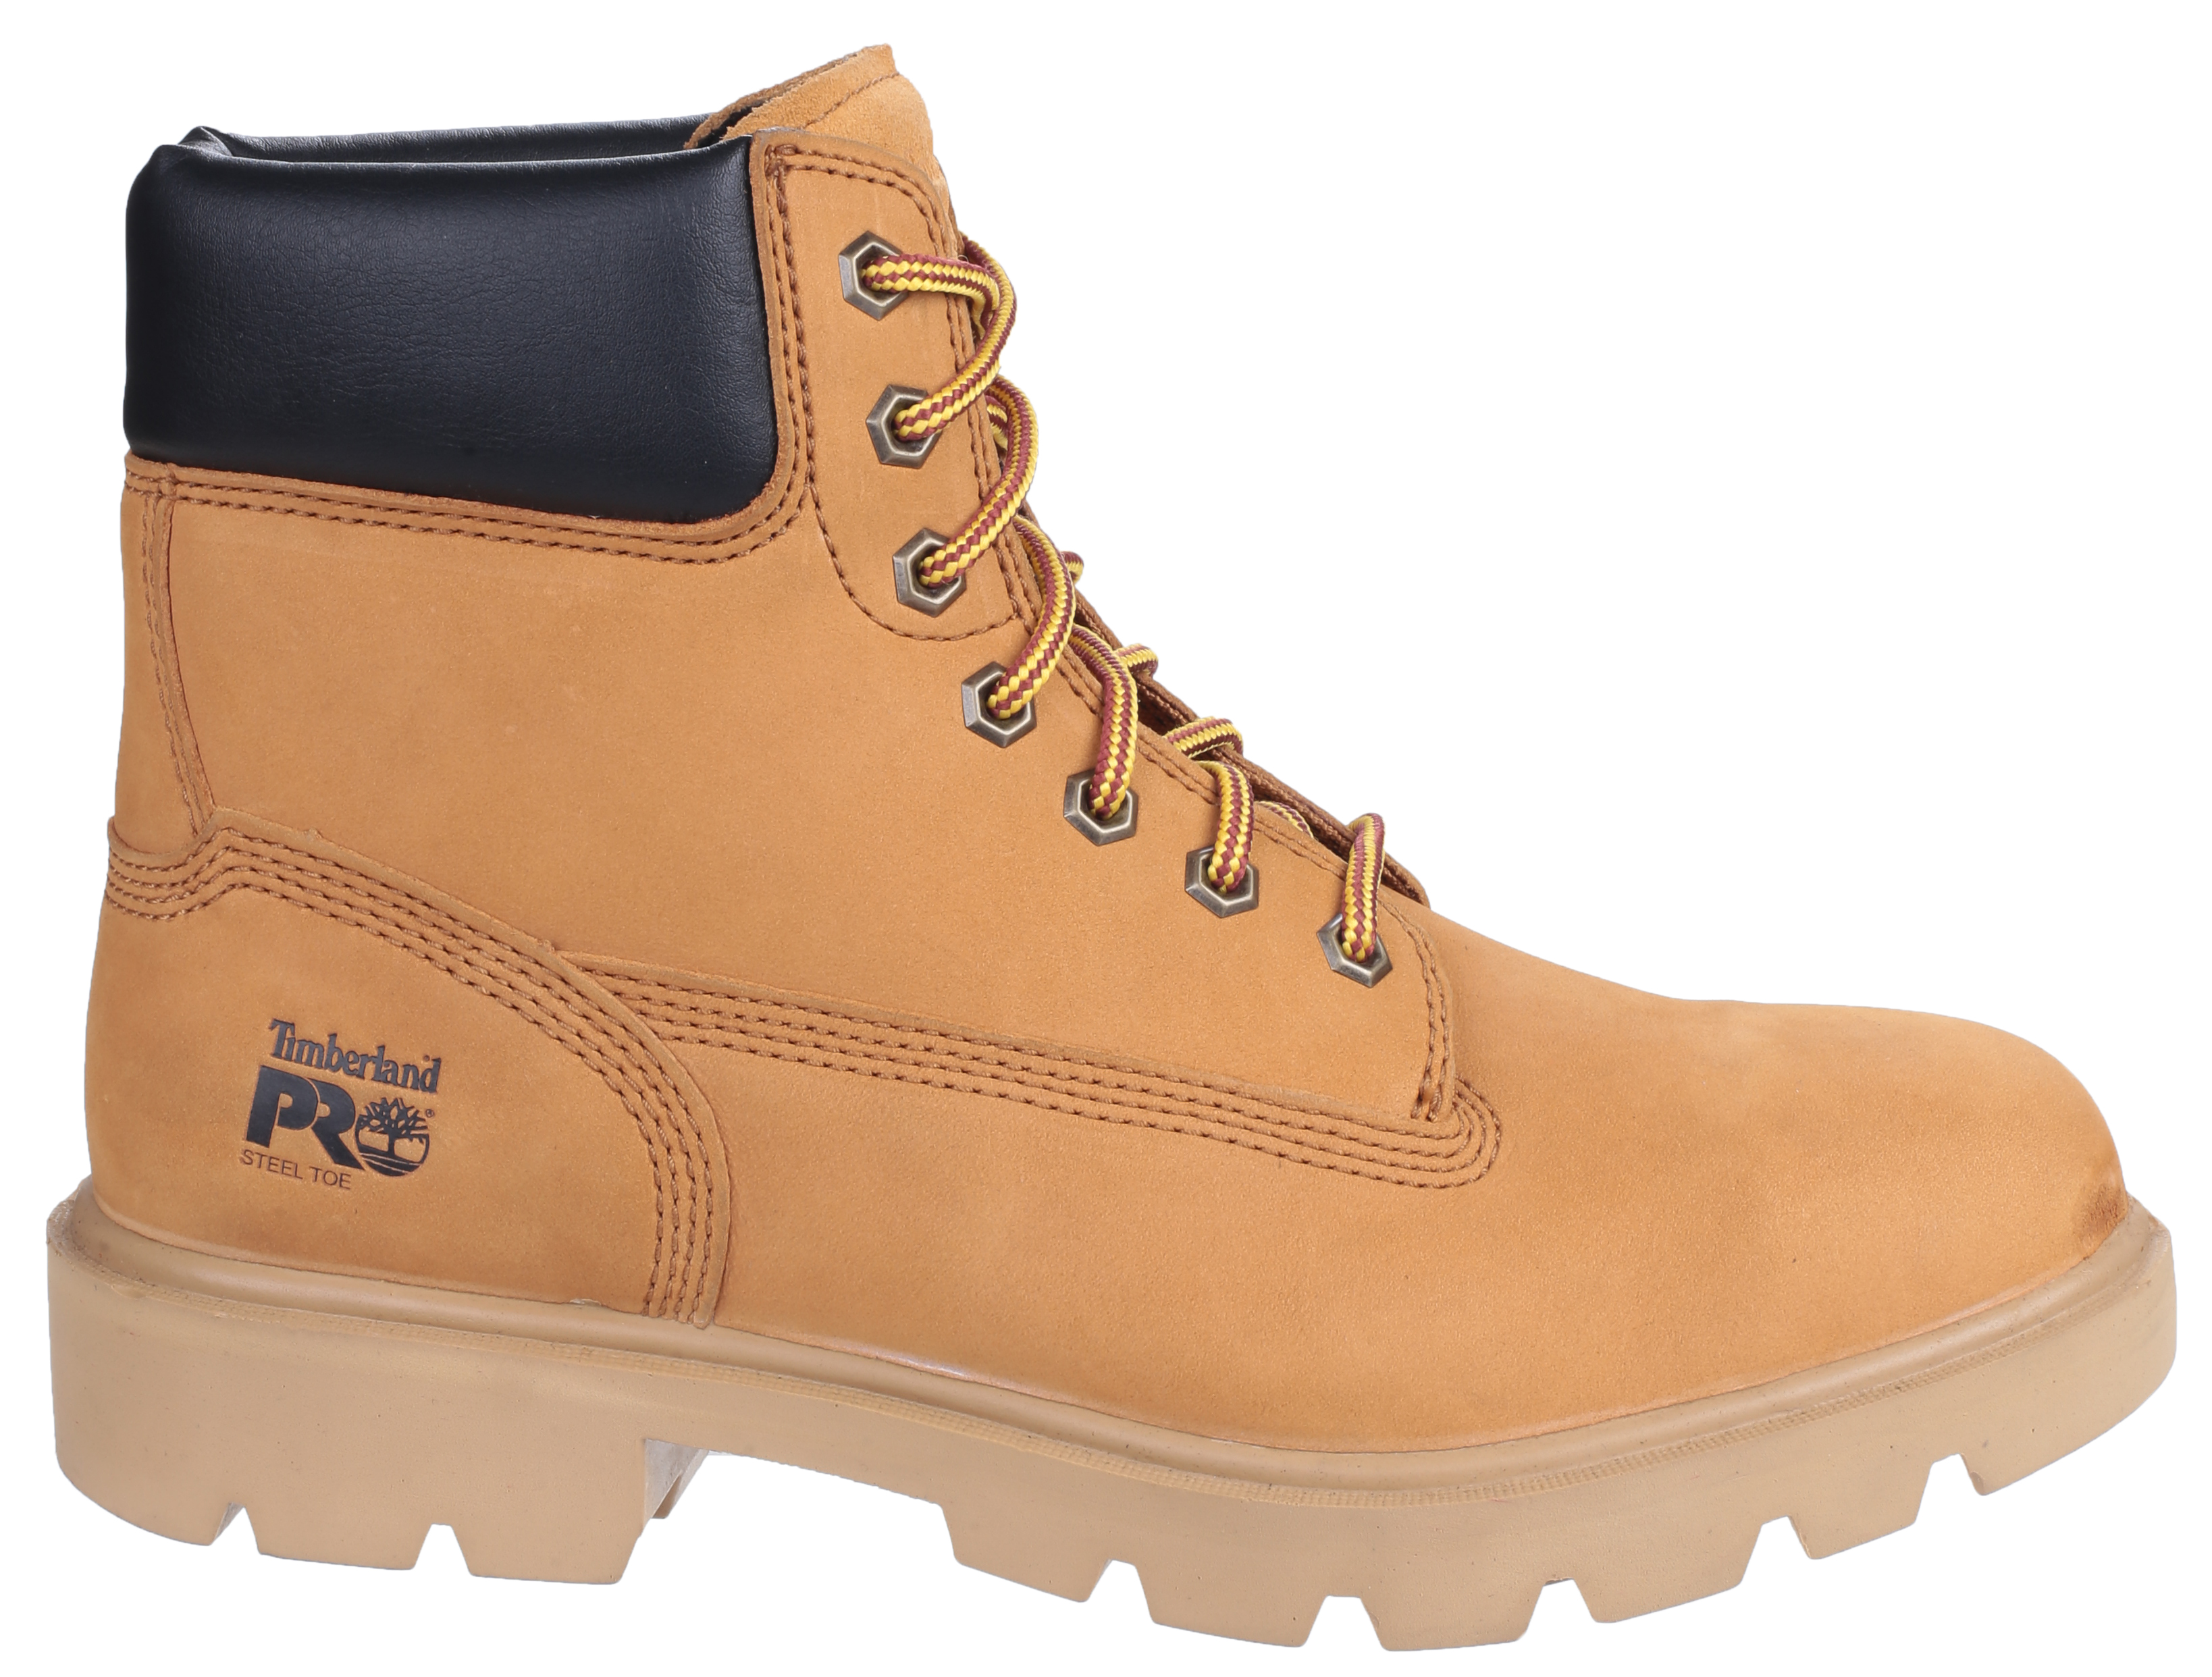 Timberland Pro Sawhorse Safety Boots The Safety Shack